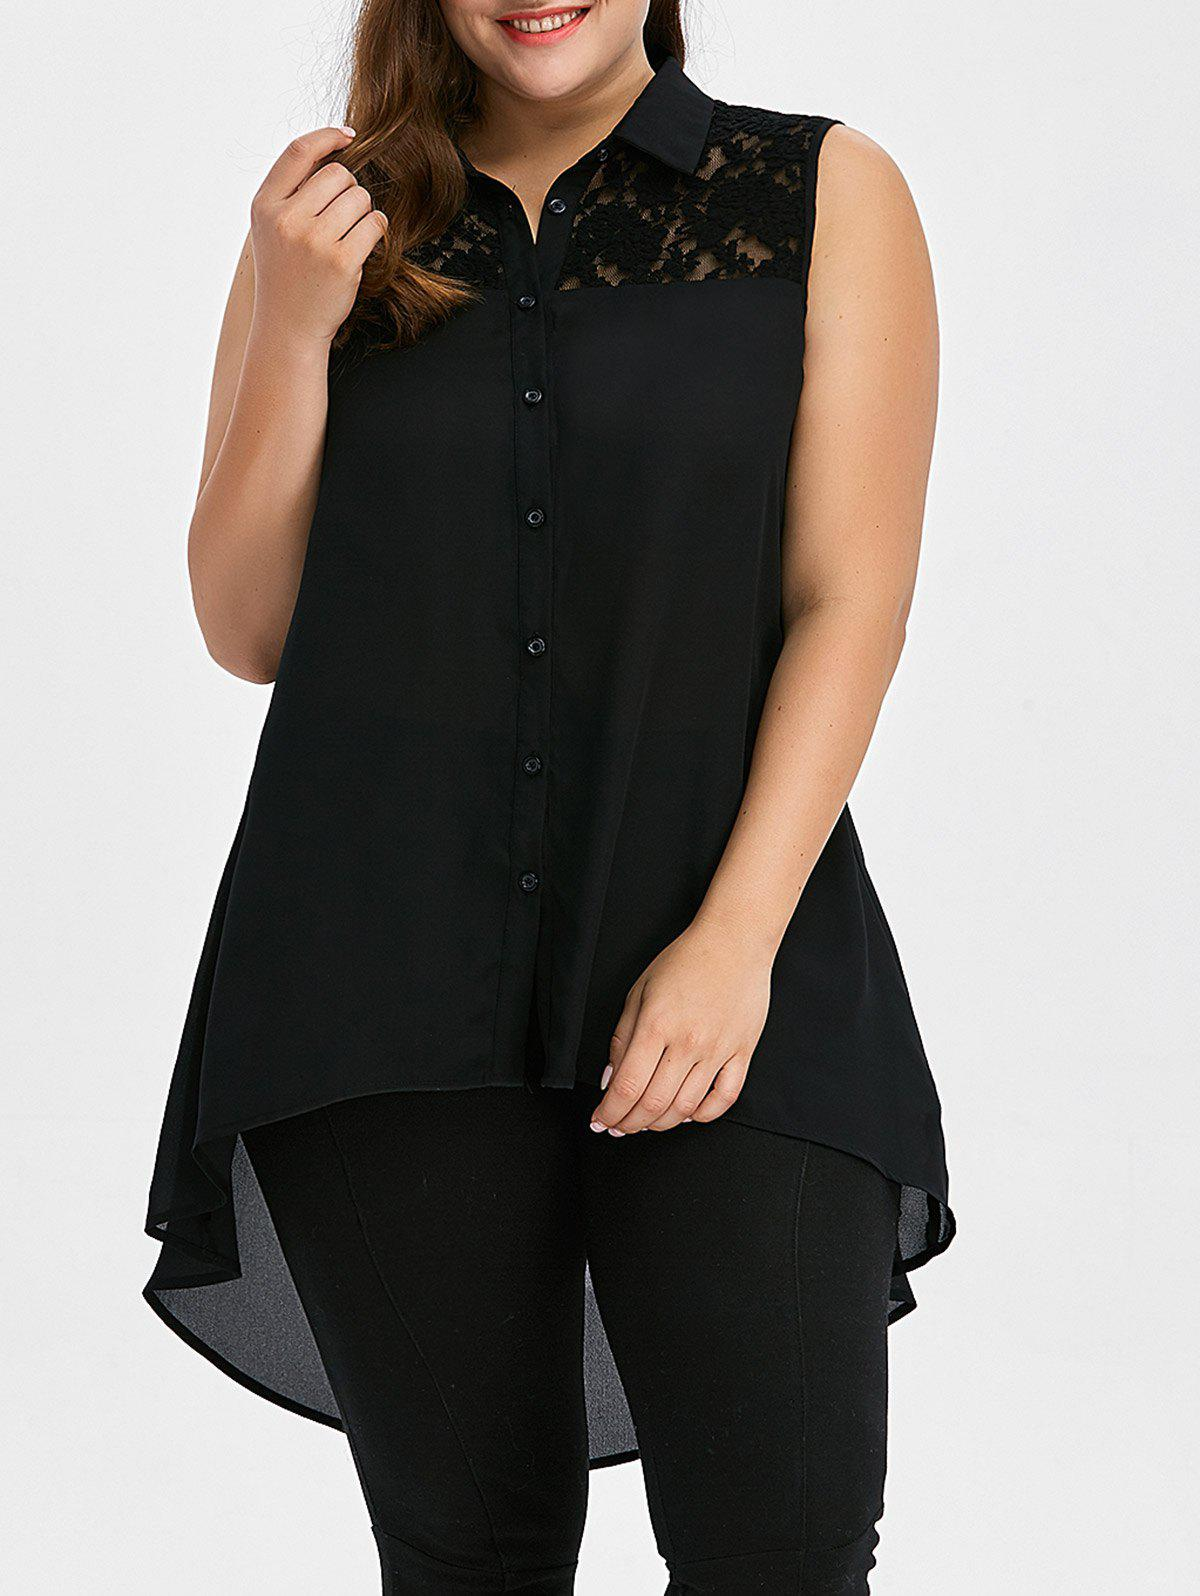 Plus Size Lace Insert High Low TopWOMEN<br><br>Size: 5XL; Color: BLACK; Material: Polyester; Shirt Length: Long; Sleeve Length: Sleeveless; Collar: Shirt Collar; Style: Fashion; Season: Summer; Pattern Type: Patchwork; Weight: 0.3500kg; Package Contents: 1 x Tank Top;